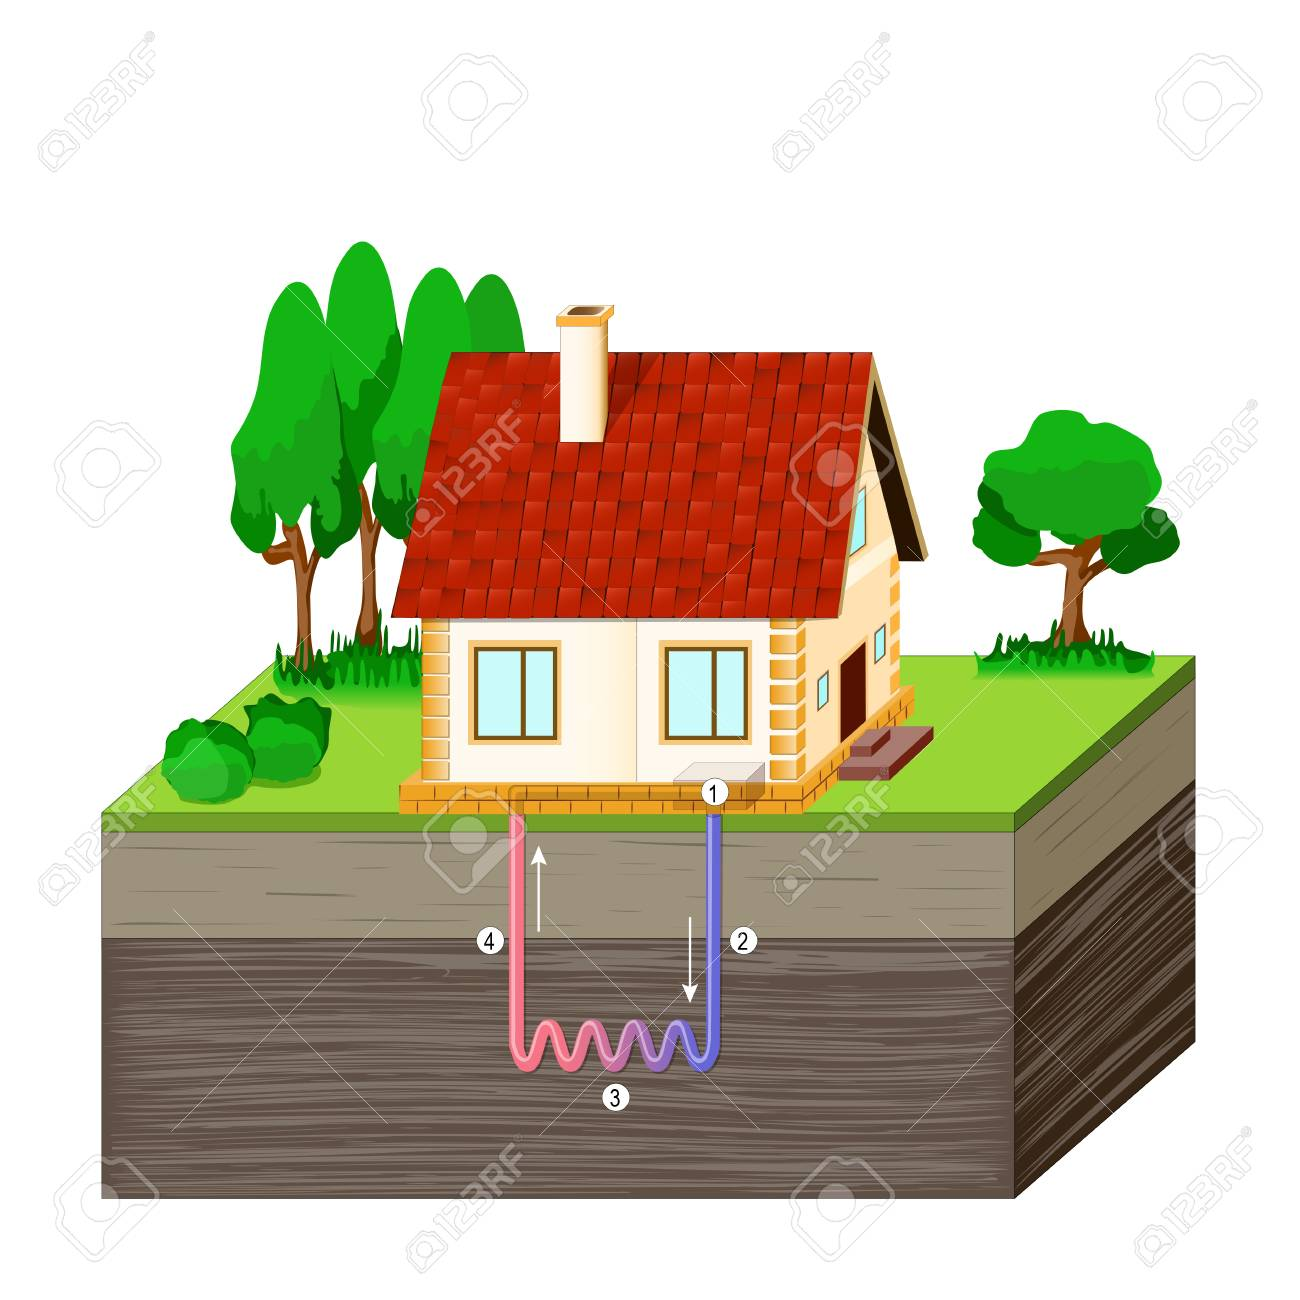 diagram of a house receiving geothermal energy  heat pump or cooling  system  vector illustration